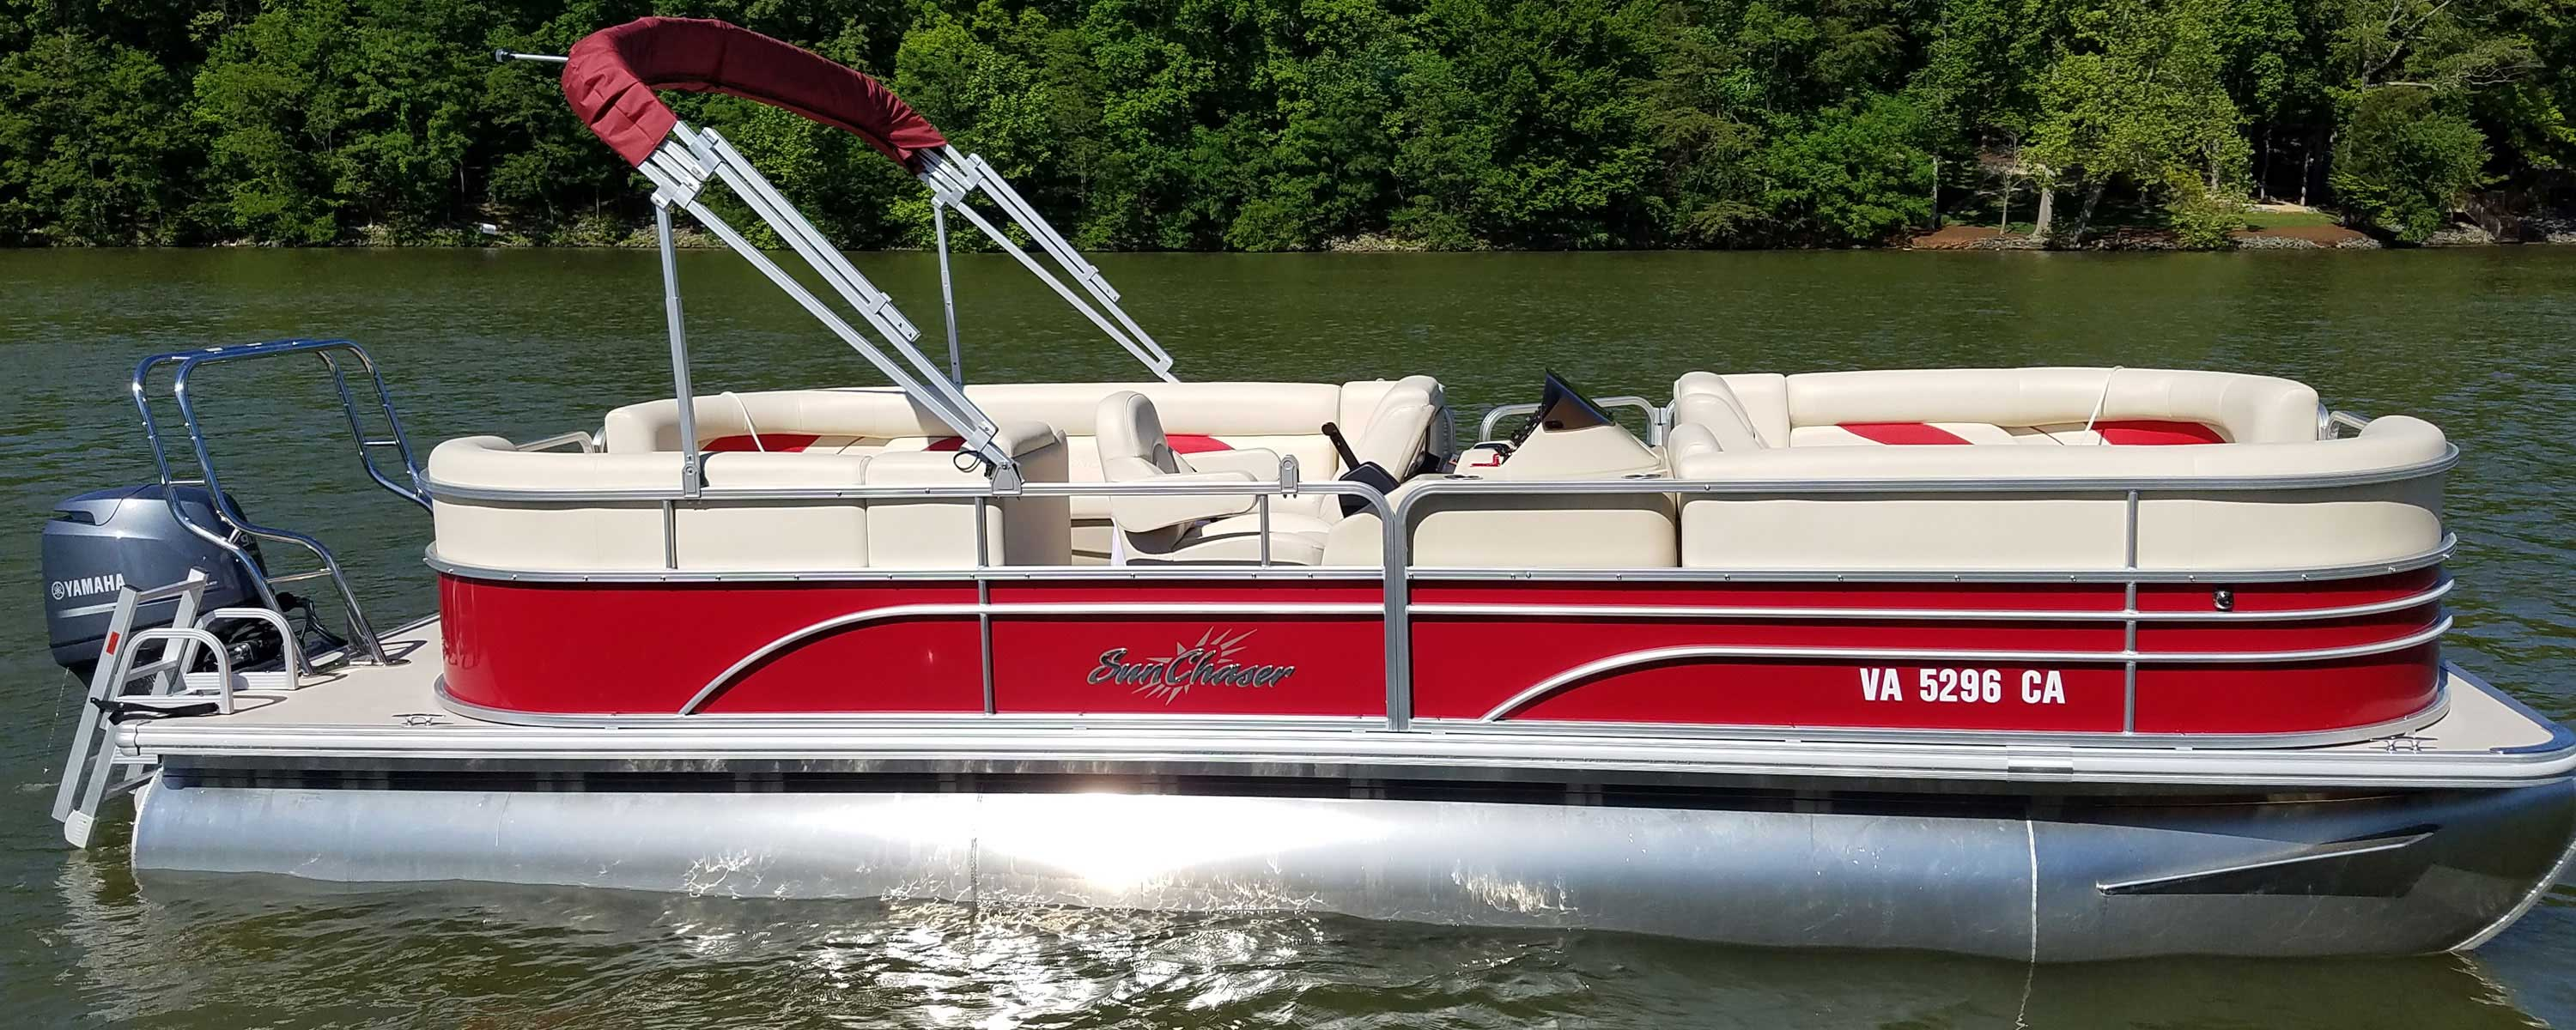 Empty red & white party pontoon boat in Smith Mountain Lake